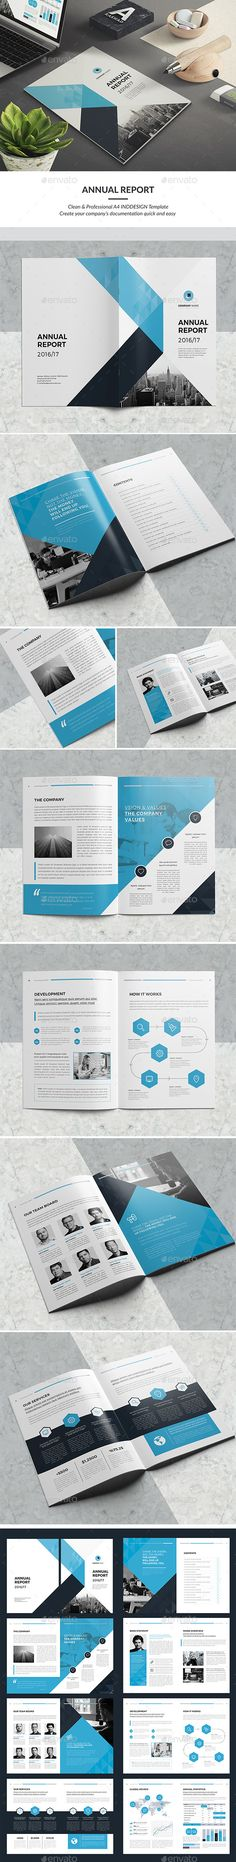 Minimal Brochure Vol III Brochures, Brochure template and Editorial - medical report template